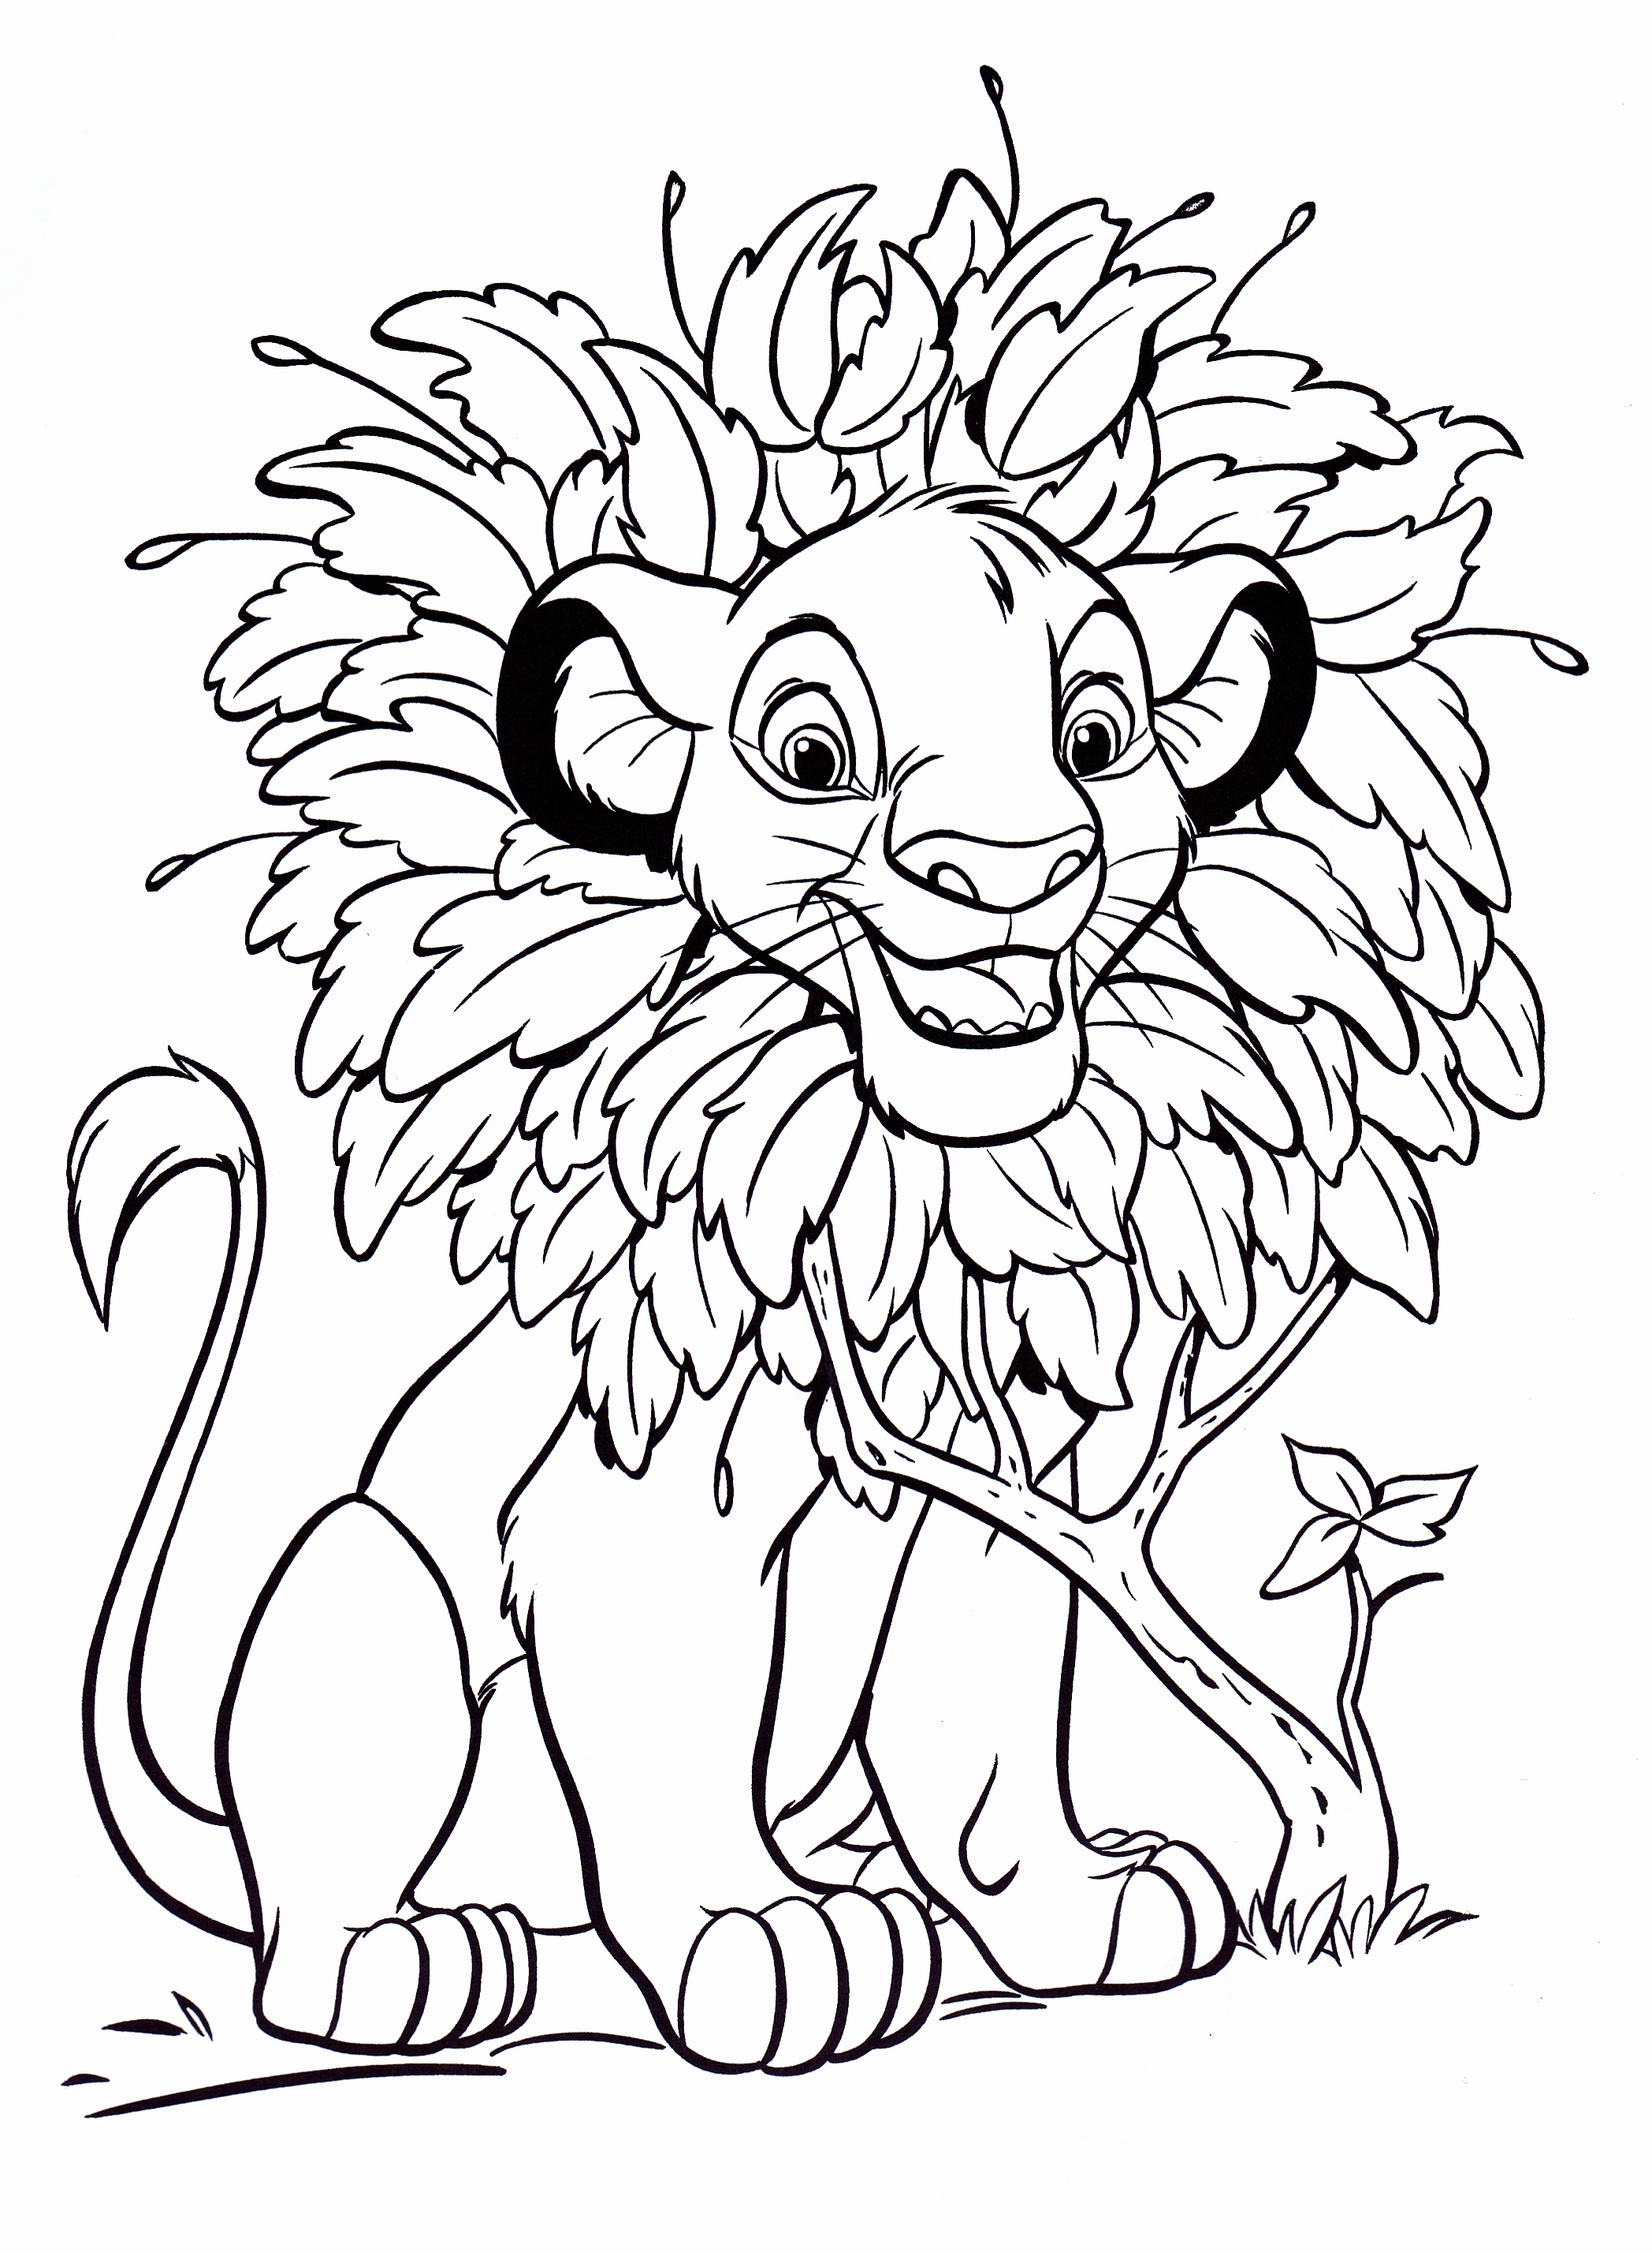 Lion King Tree Drawing at GetDrawings.com | Free for personal use ...